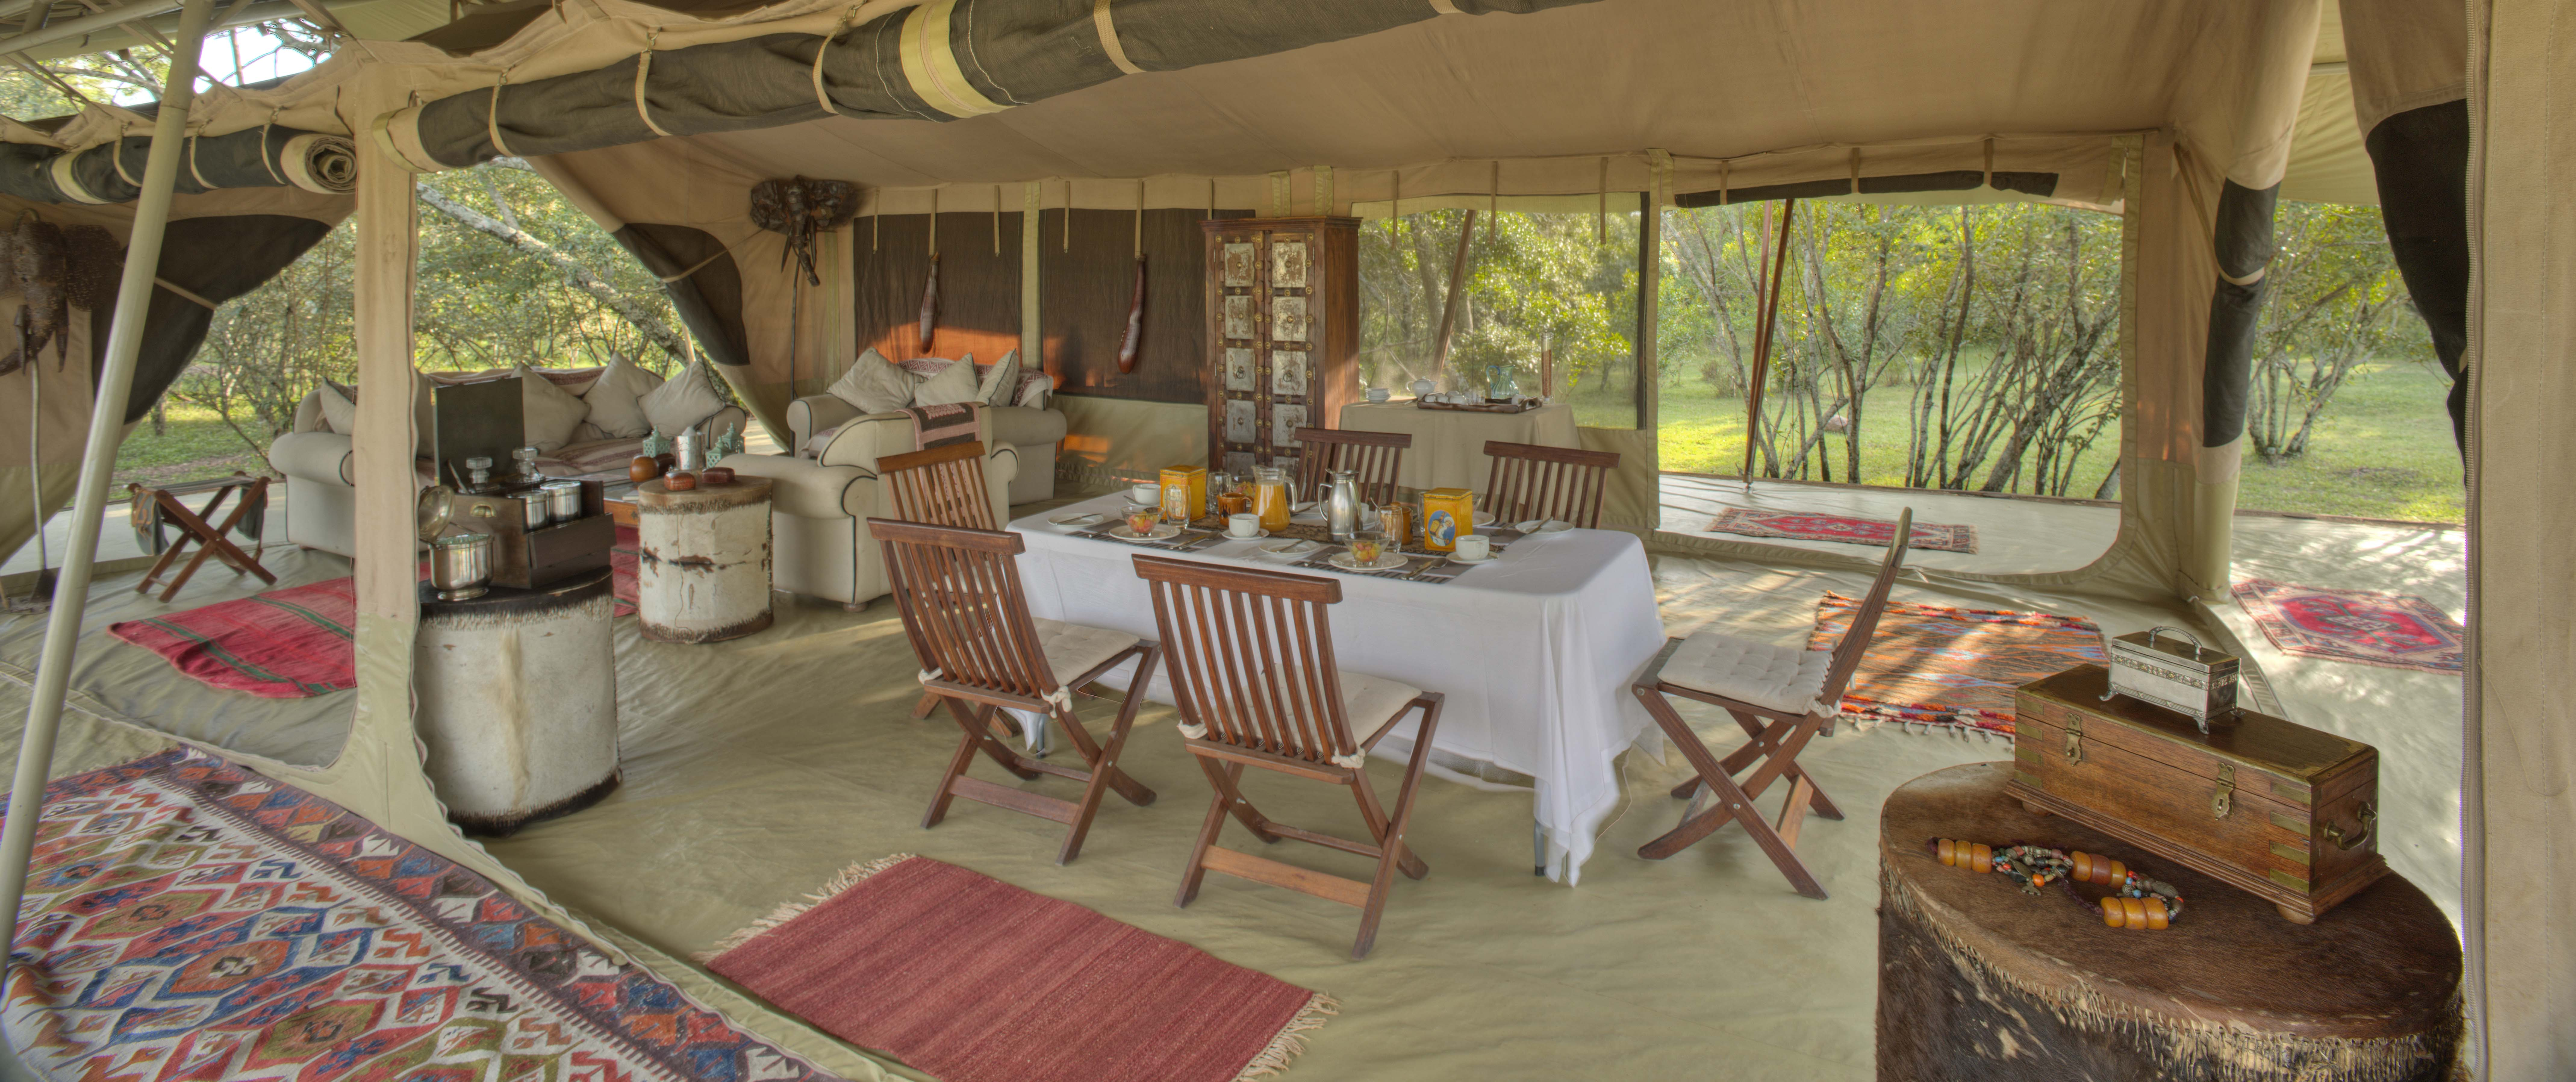 Saruni Wild - the common area for lounging and dining